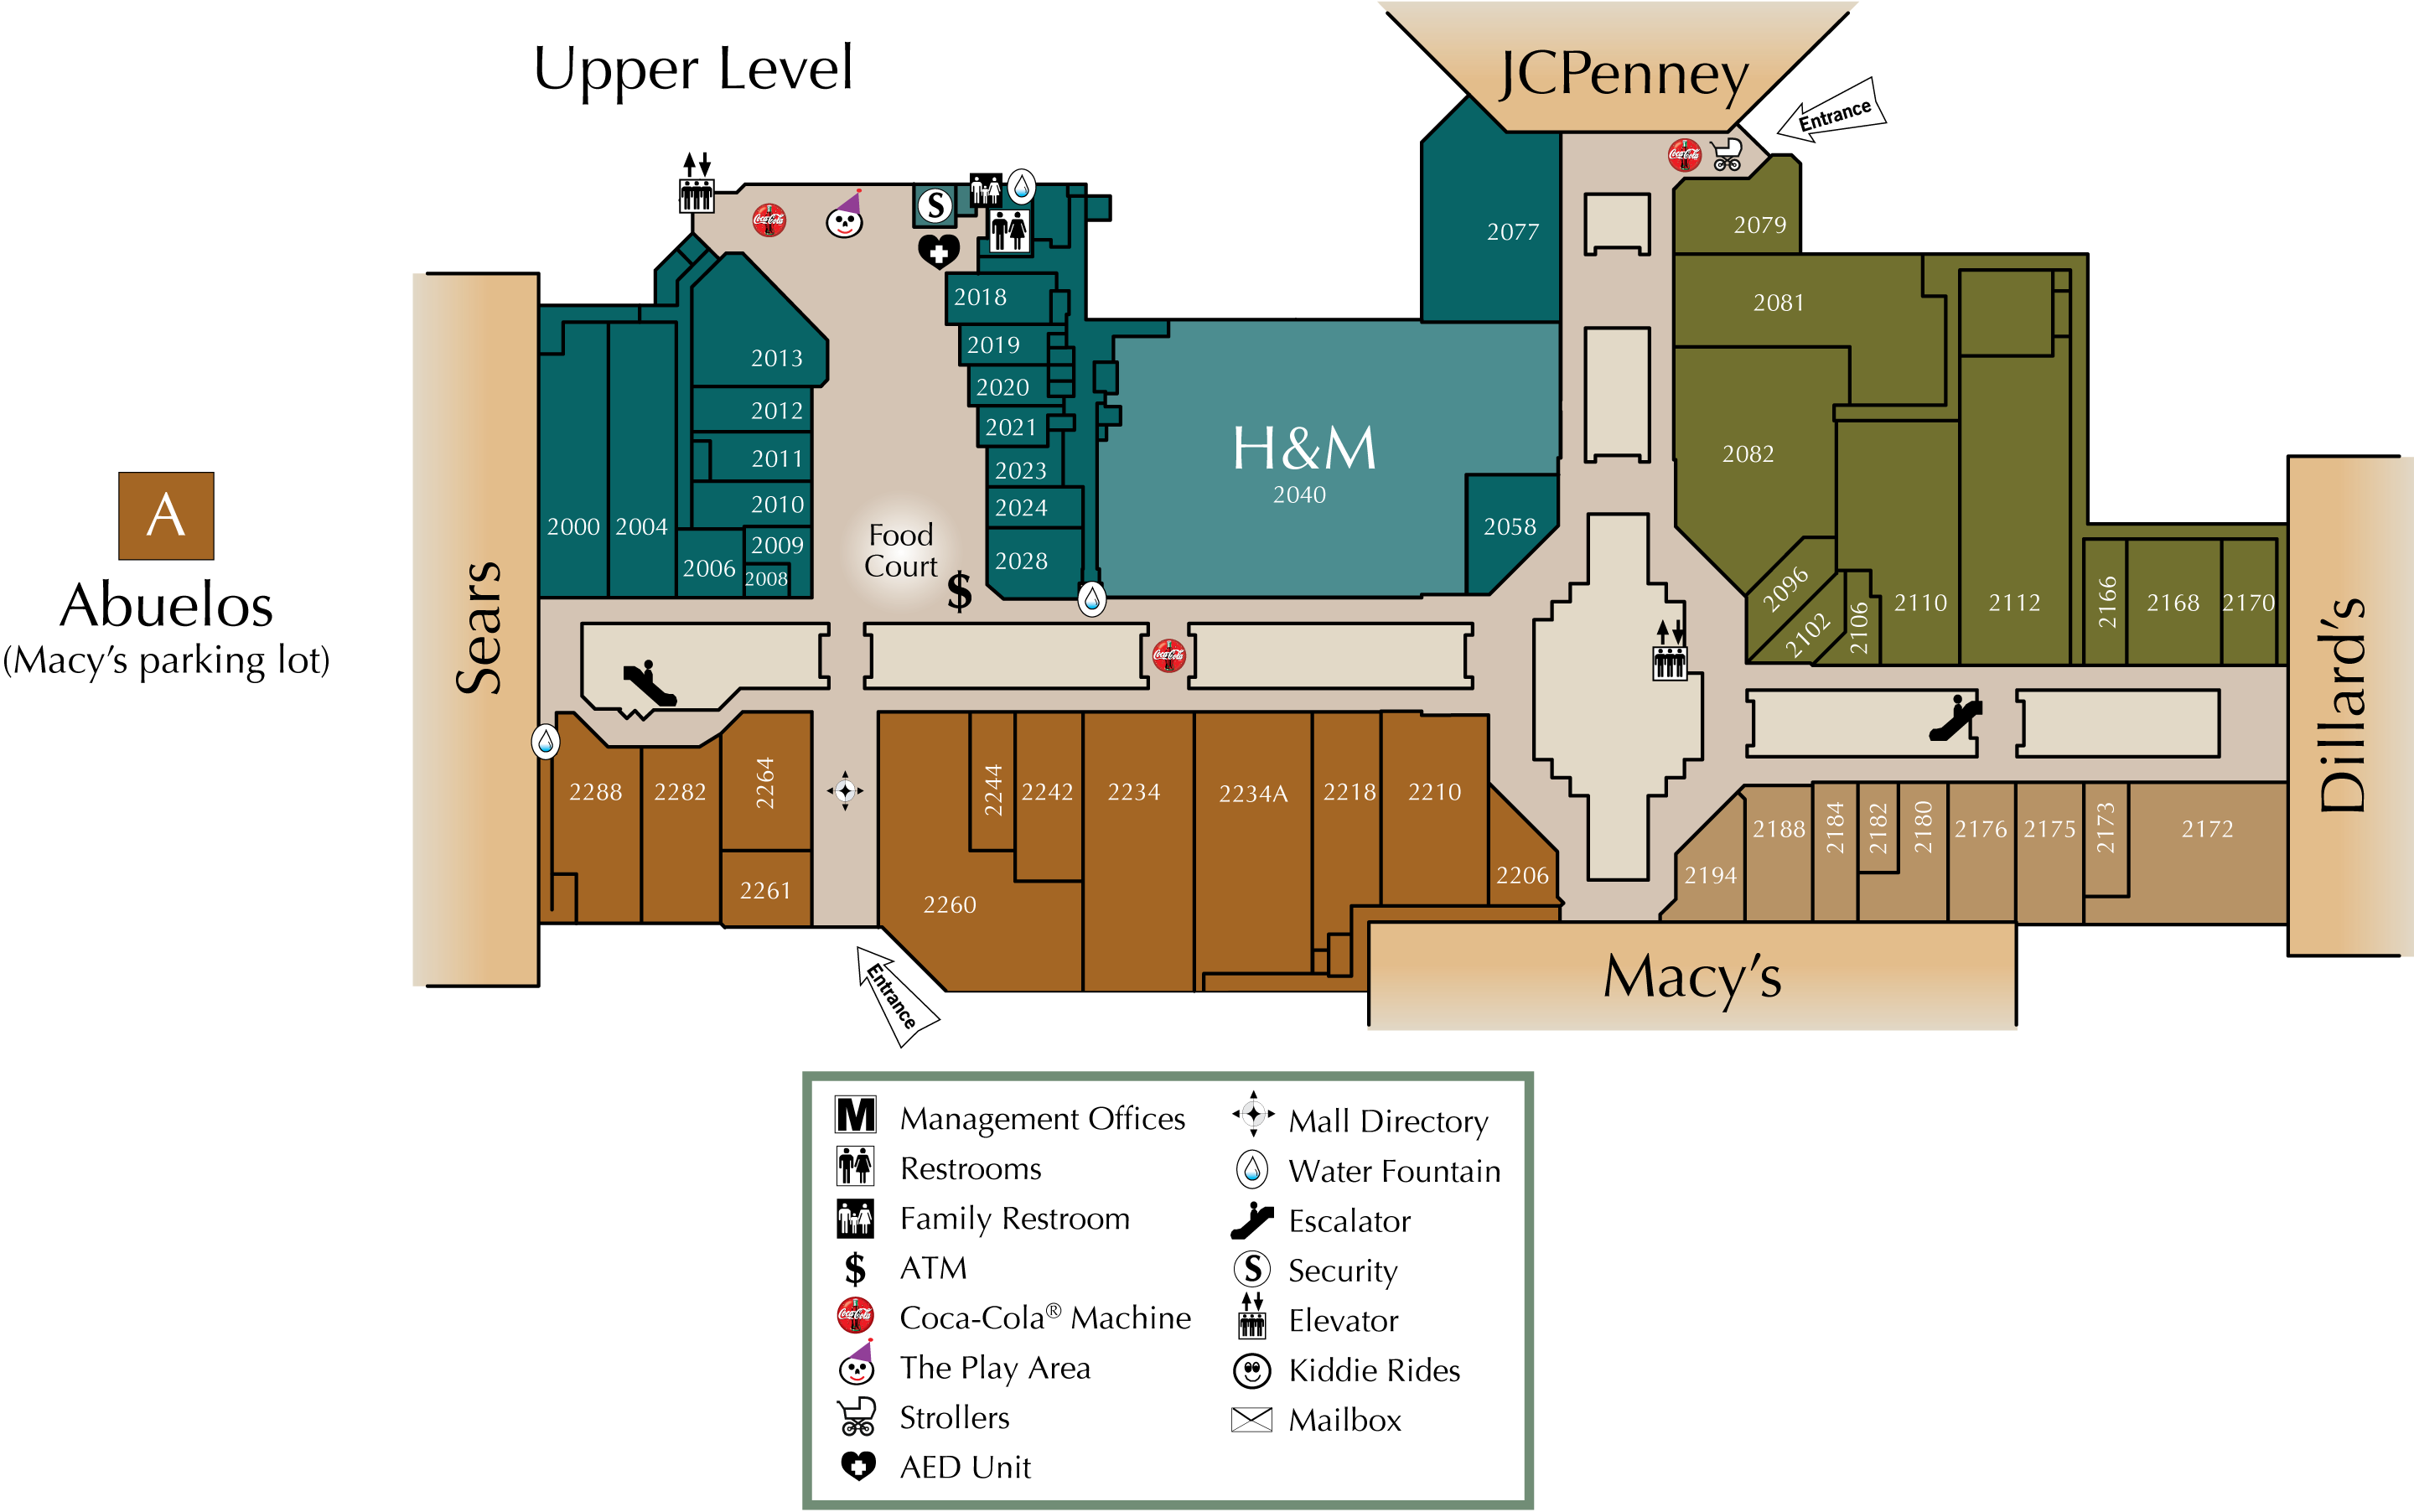 upper level directory map